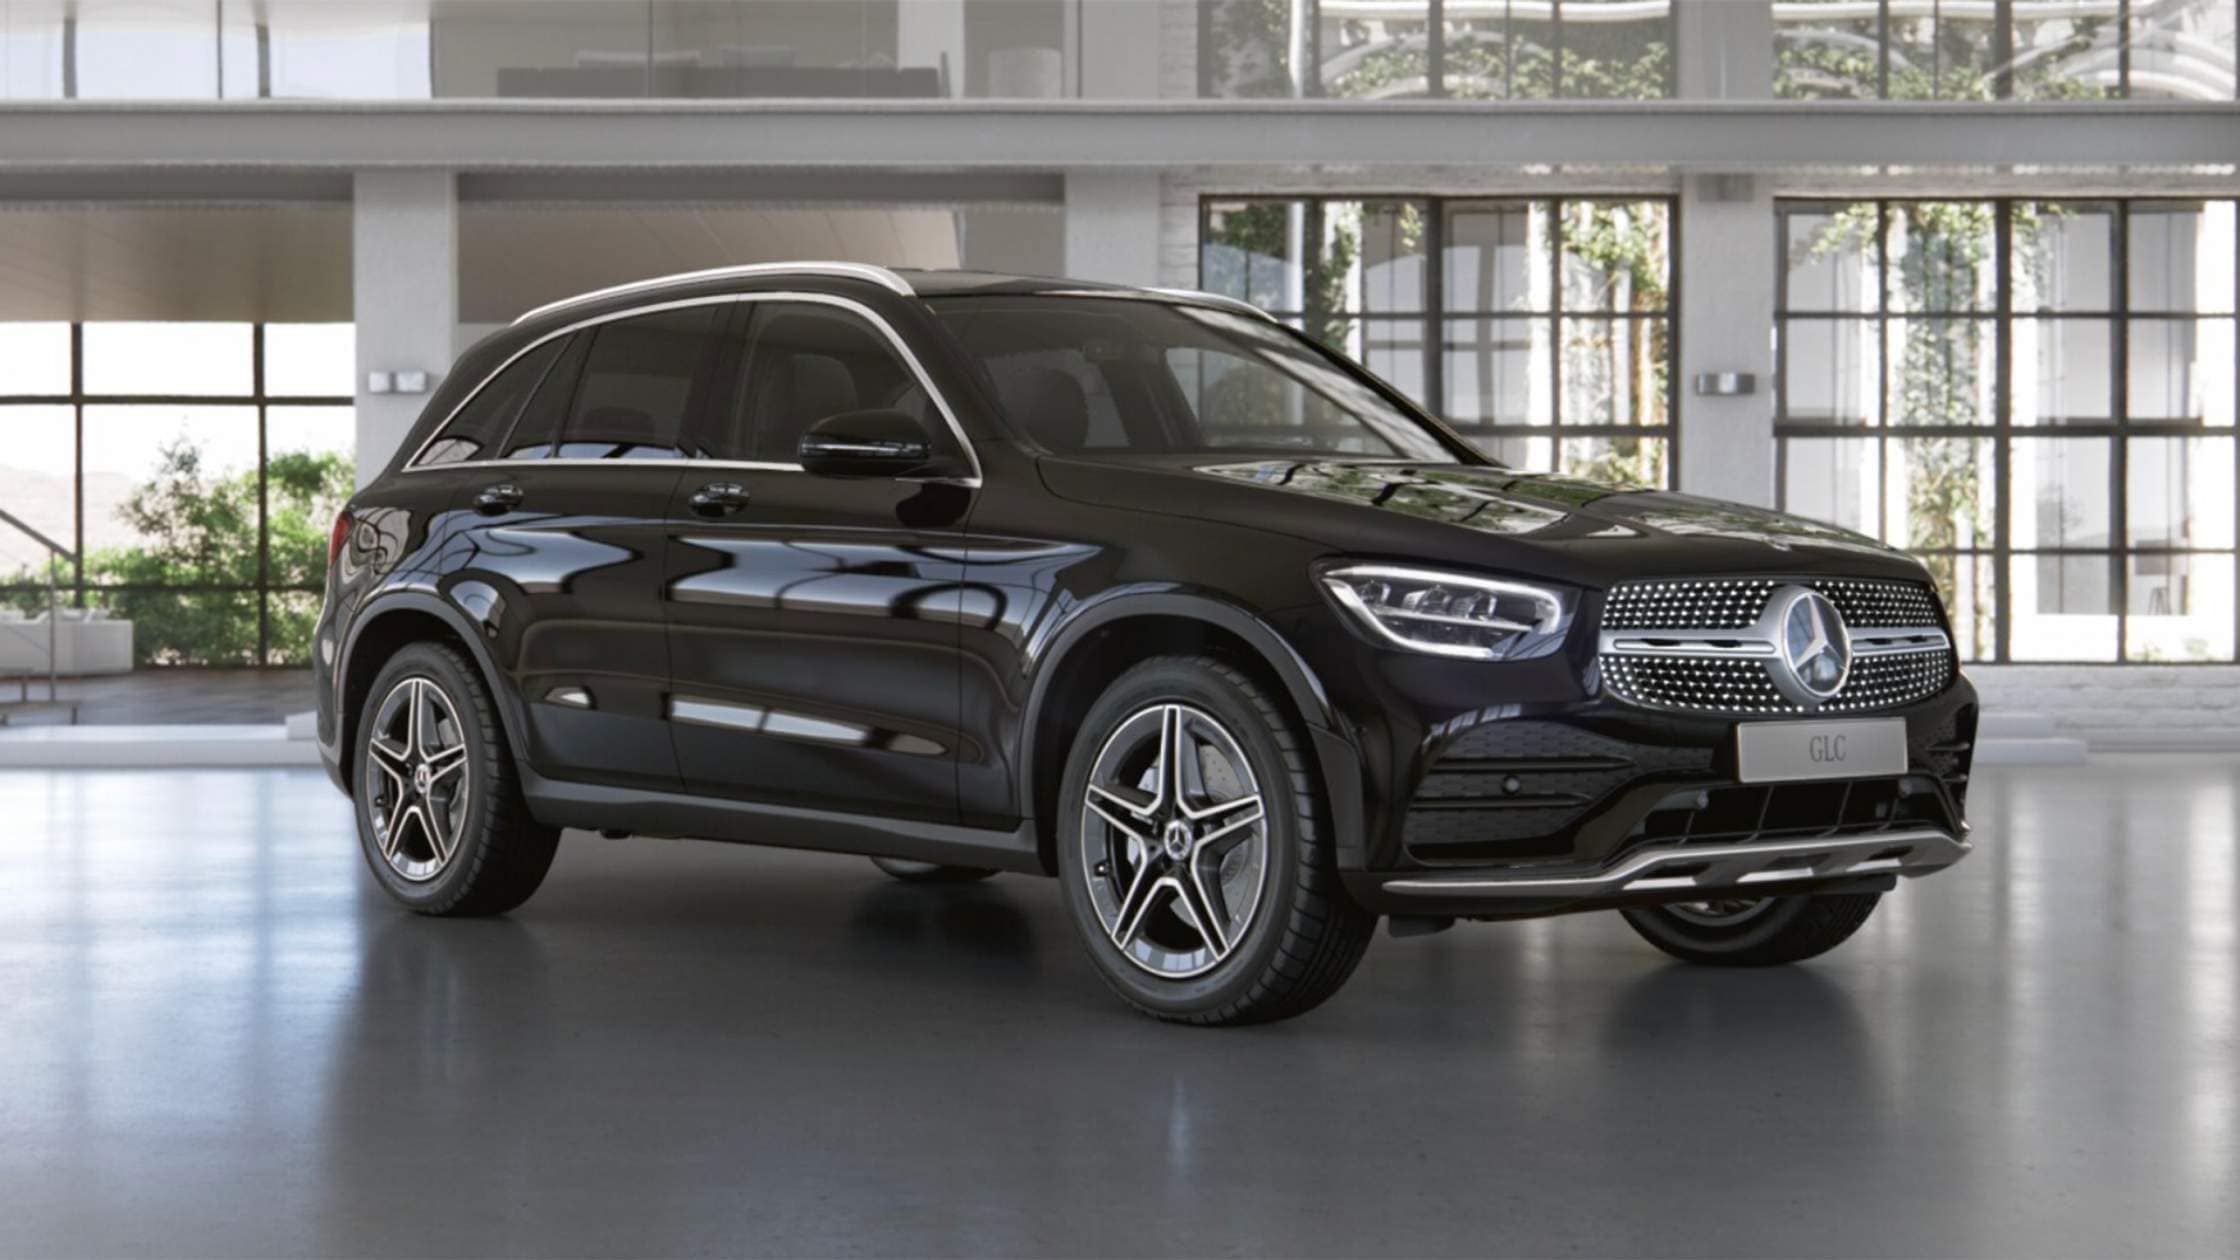 GLC 200 d Coupe Sport Edition.